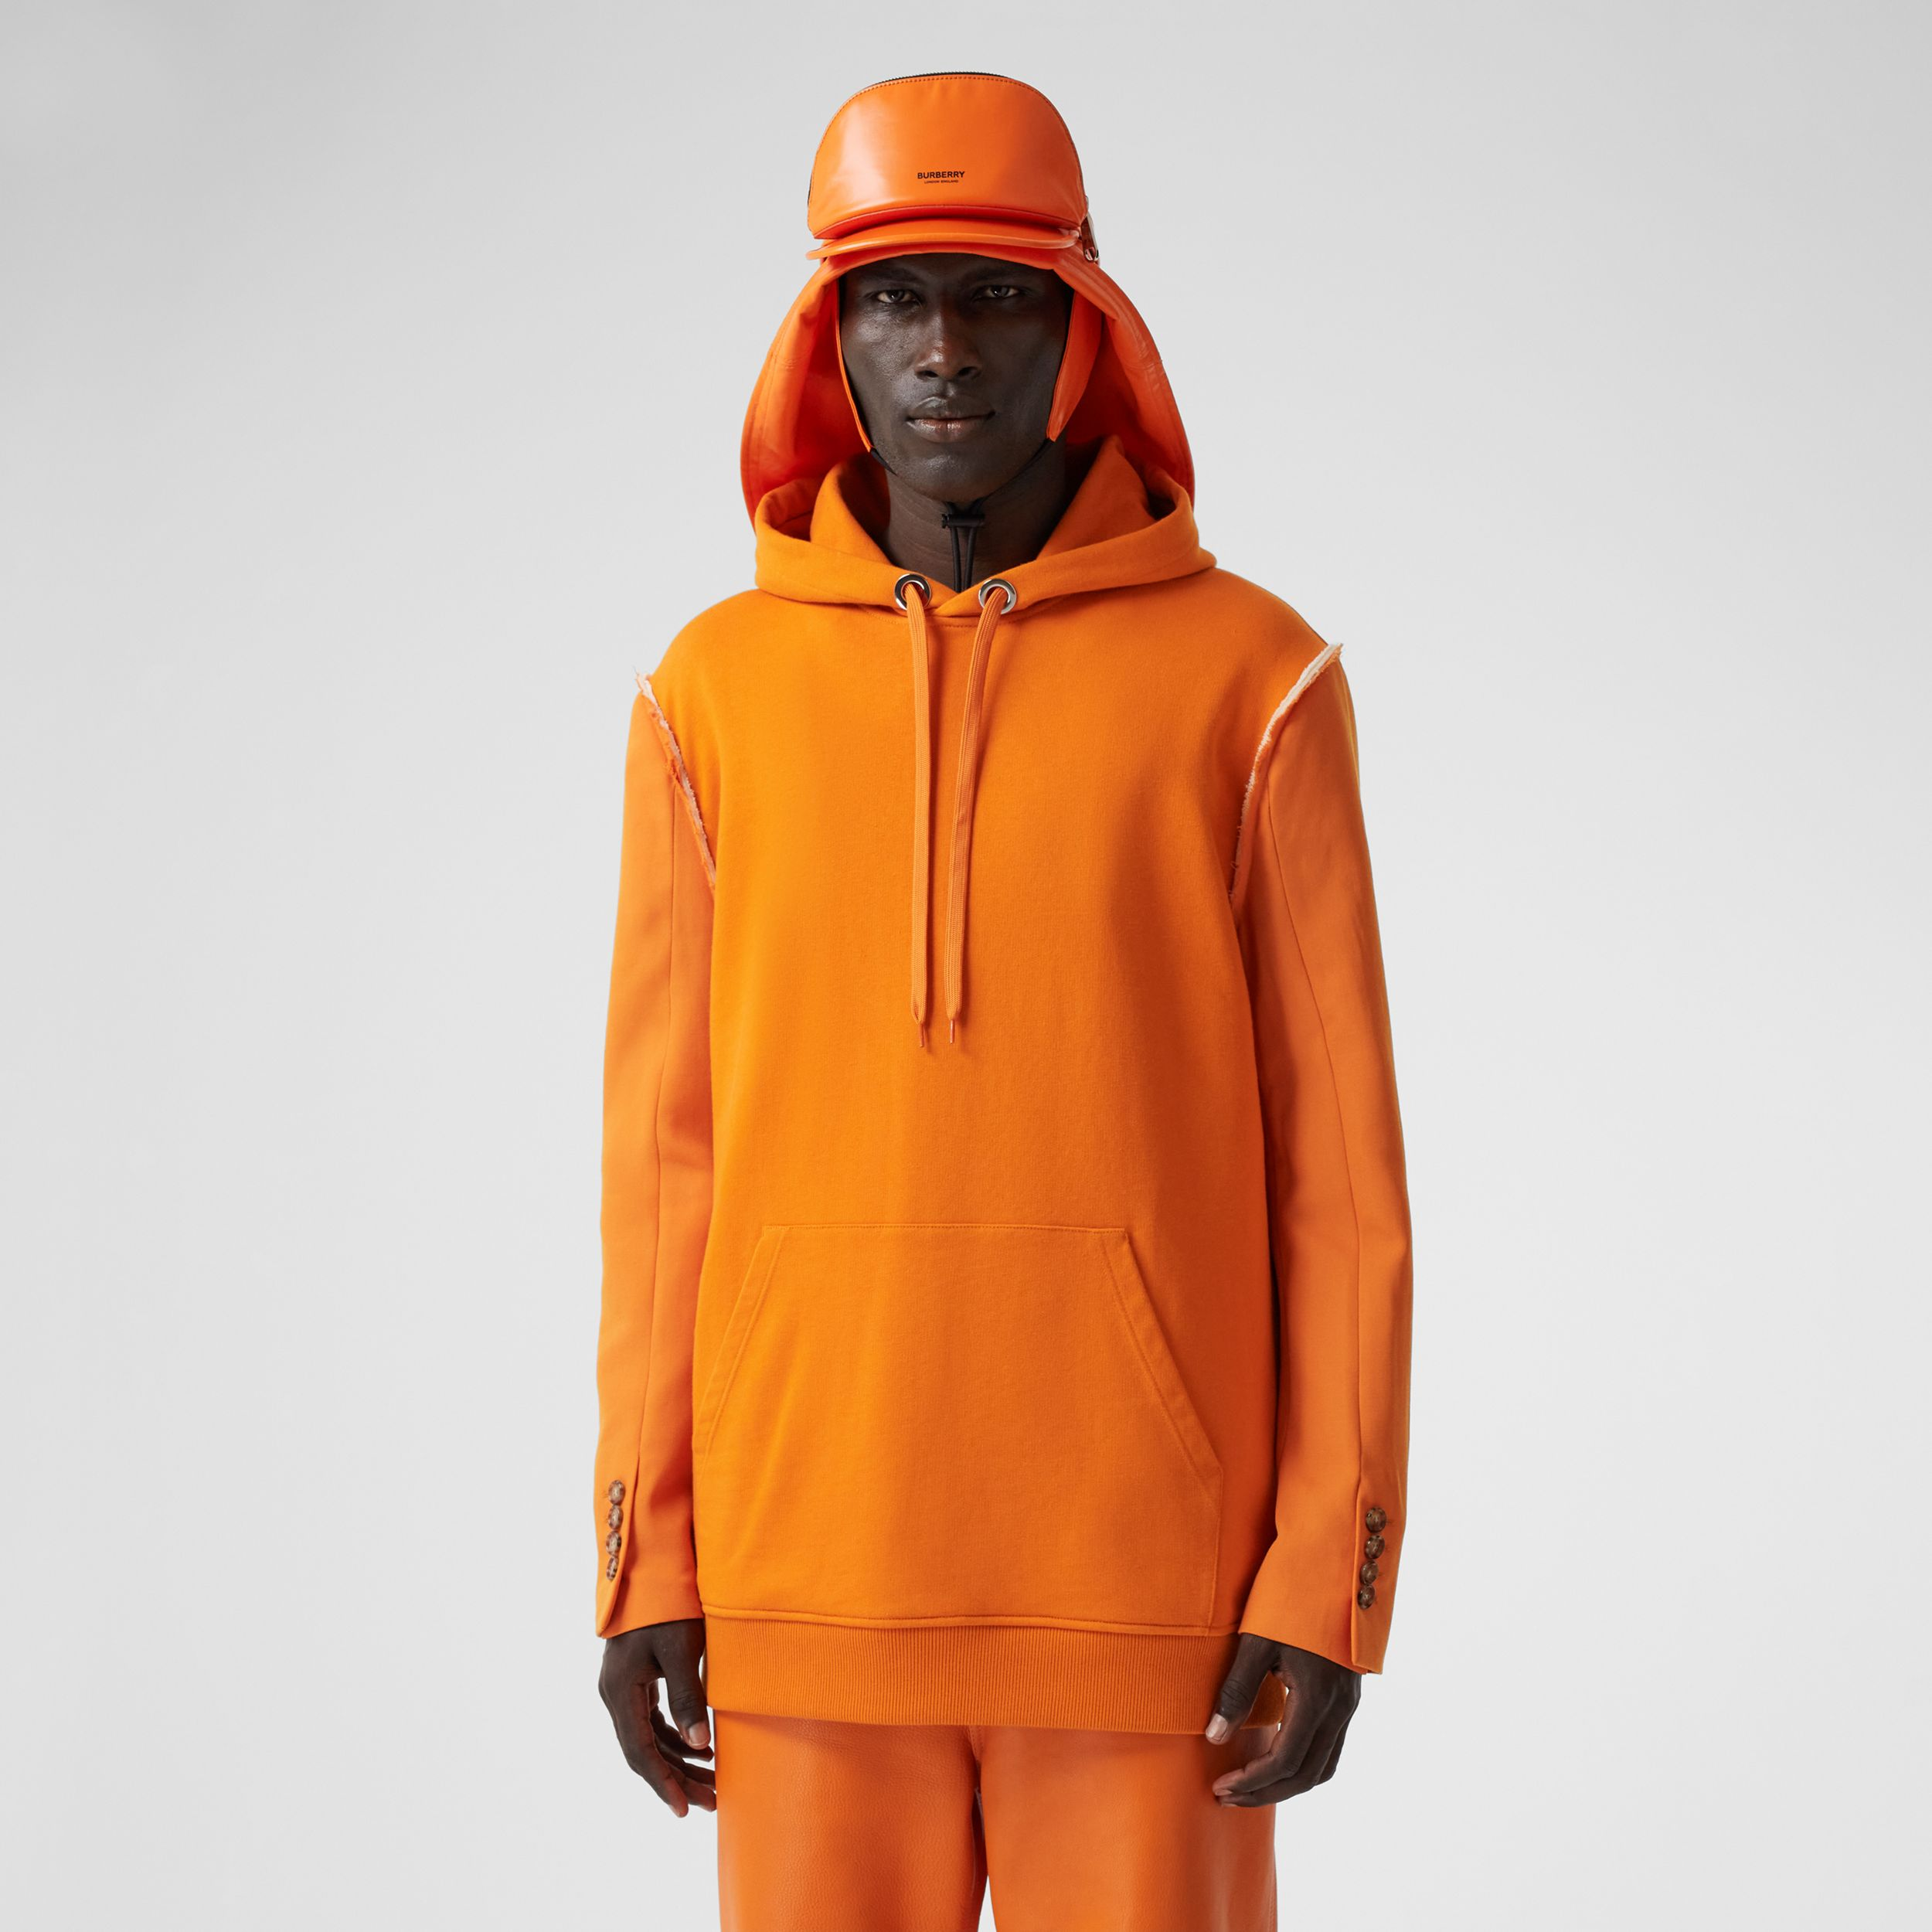 Cotton and Wool Reconstructed Hoodie in Deep Orange - Men | Burberry - 1